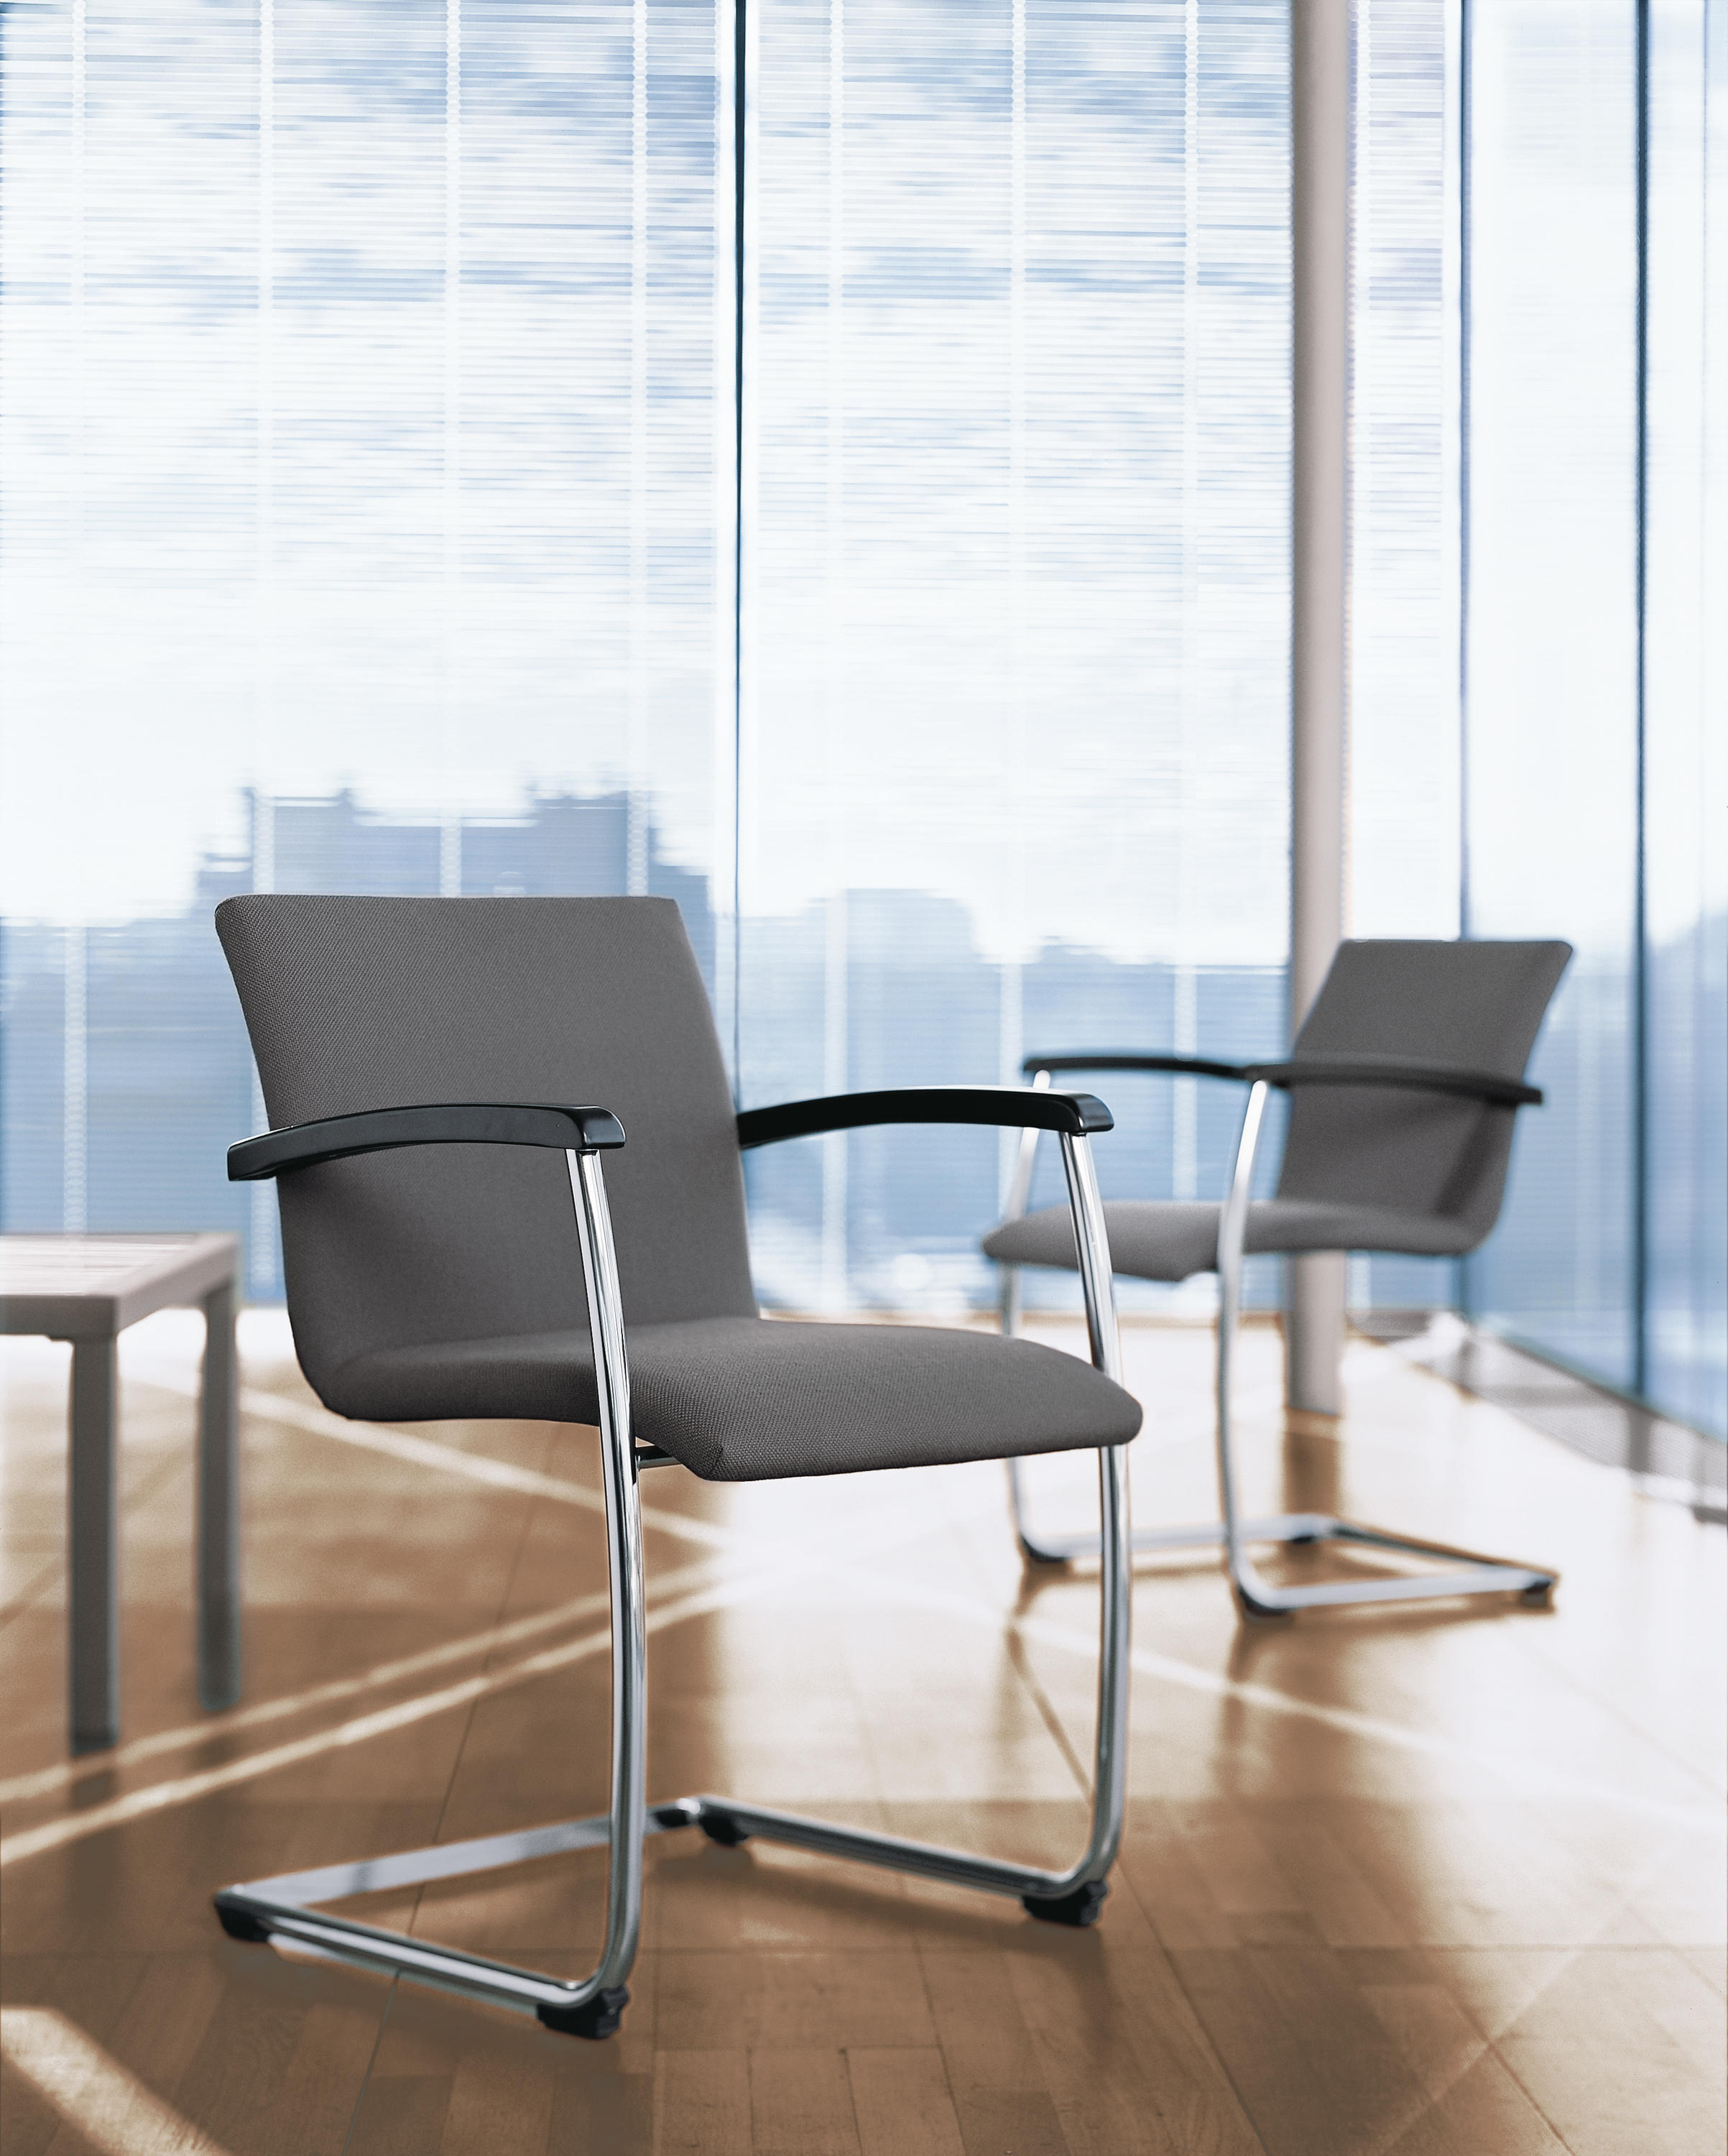 BUG - Visitors chairs / Side chairs from Bene | Architonic